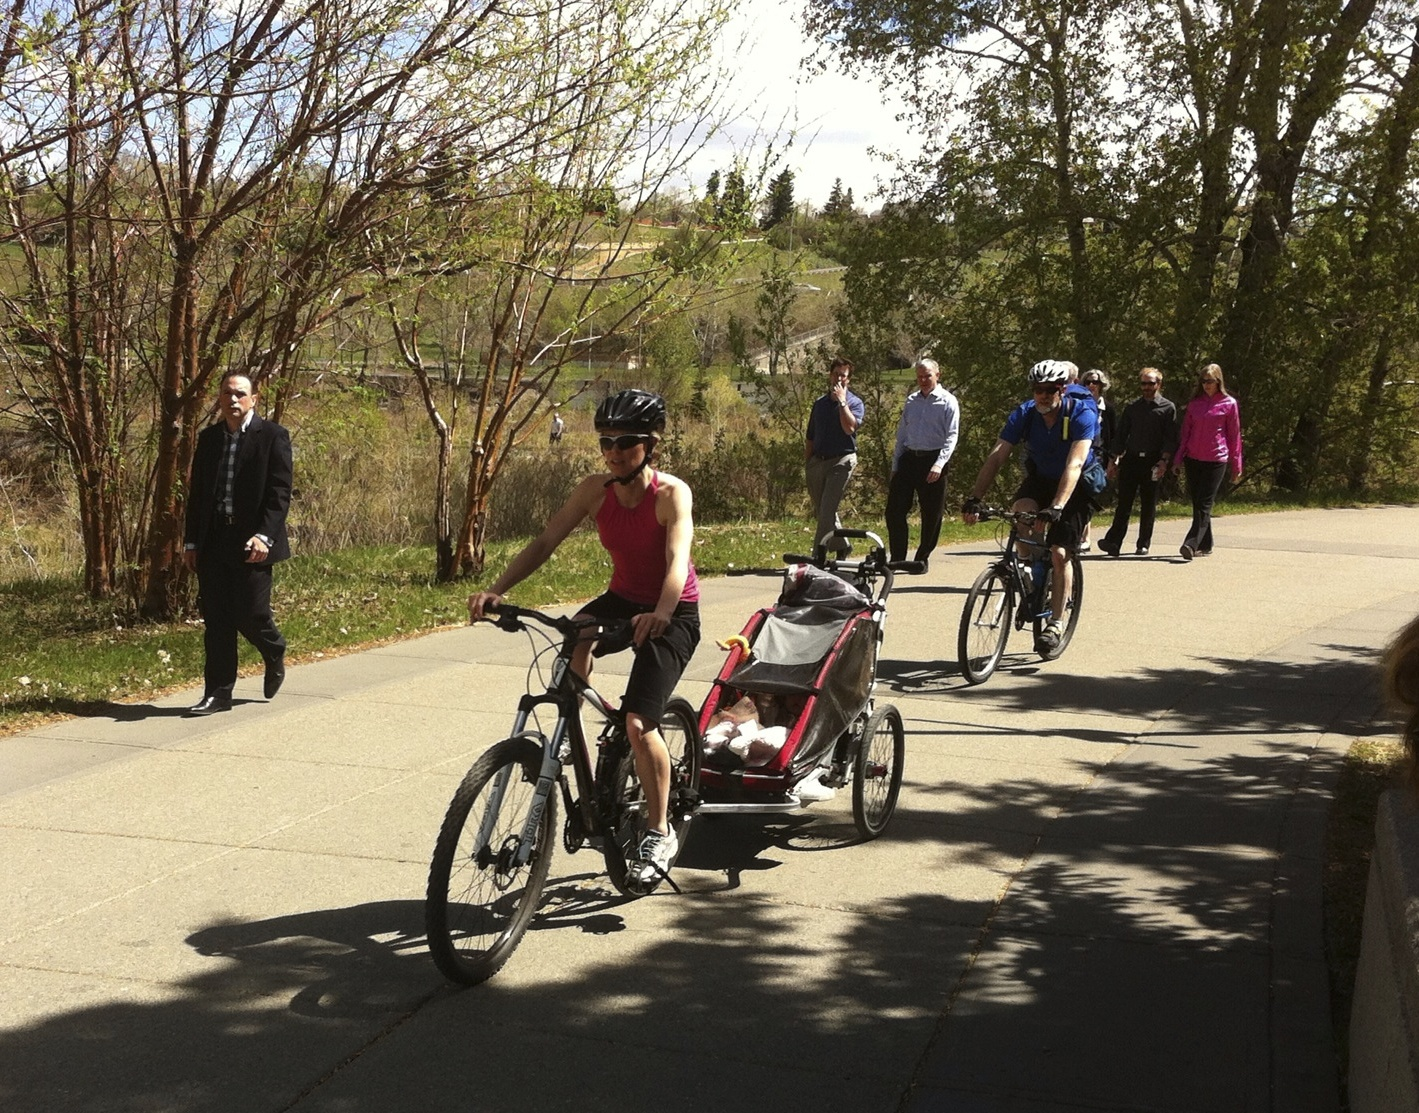 Calgary boasts almost 1,000 km of shared pathways for people of all ages and abilities.